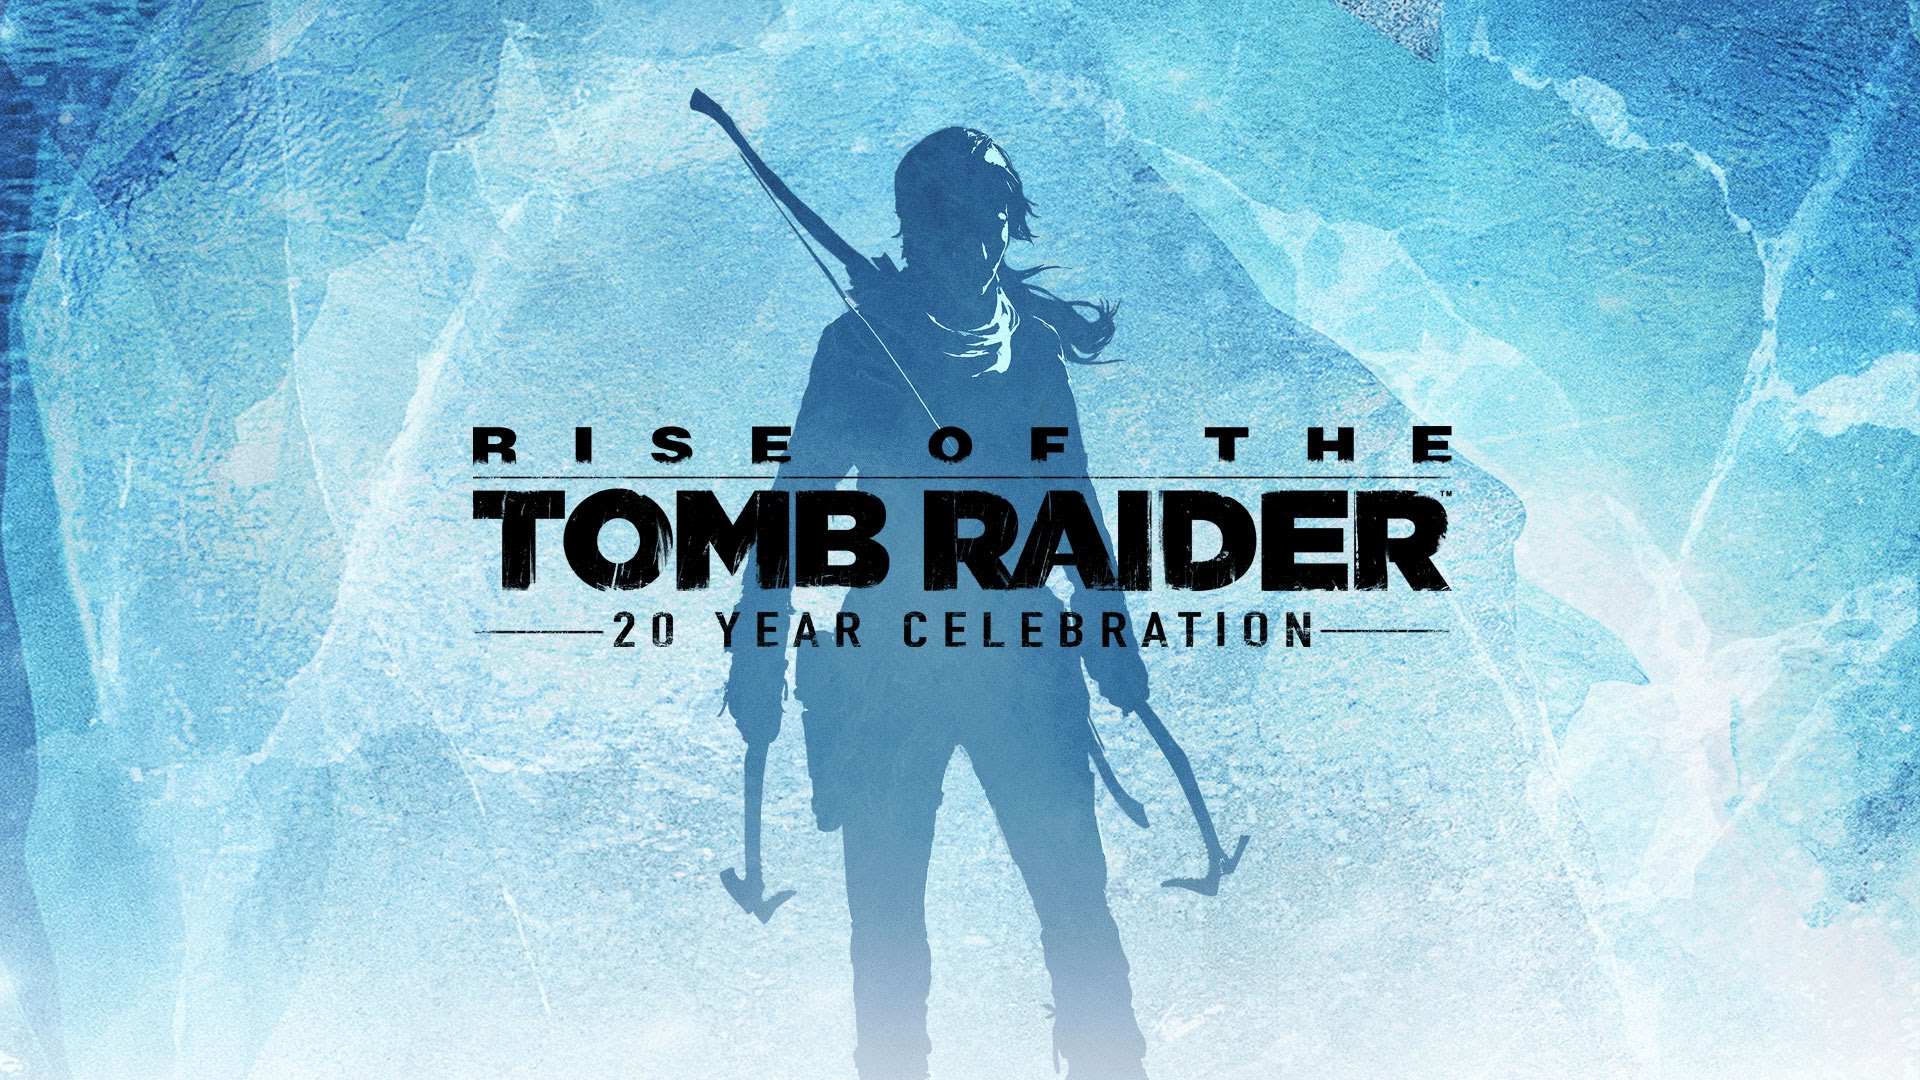 Rise of the Tomb Raider: 20 Year Celebration Announcement Trailer